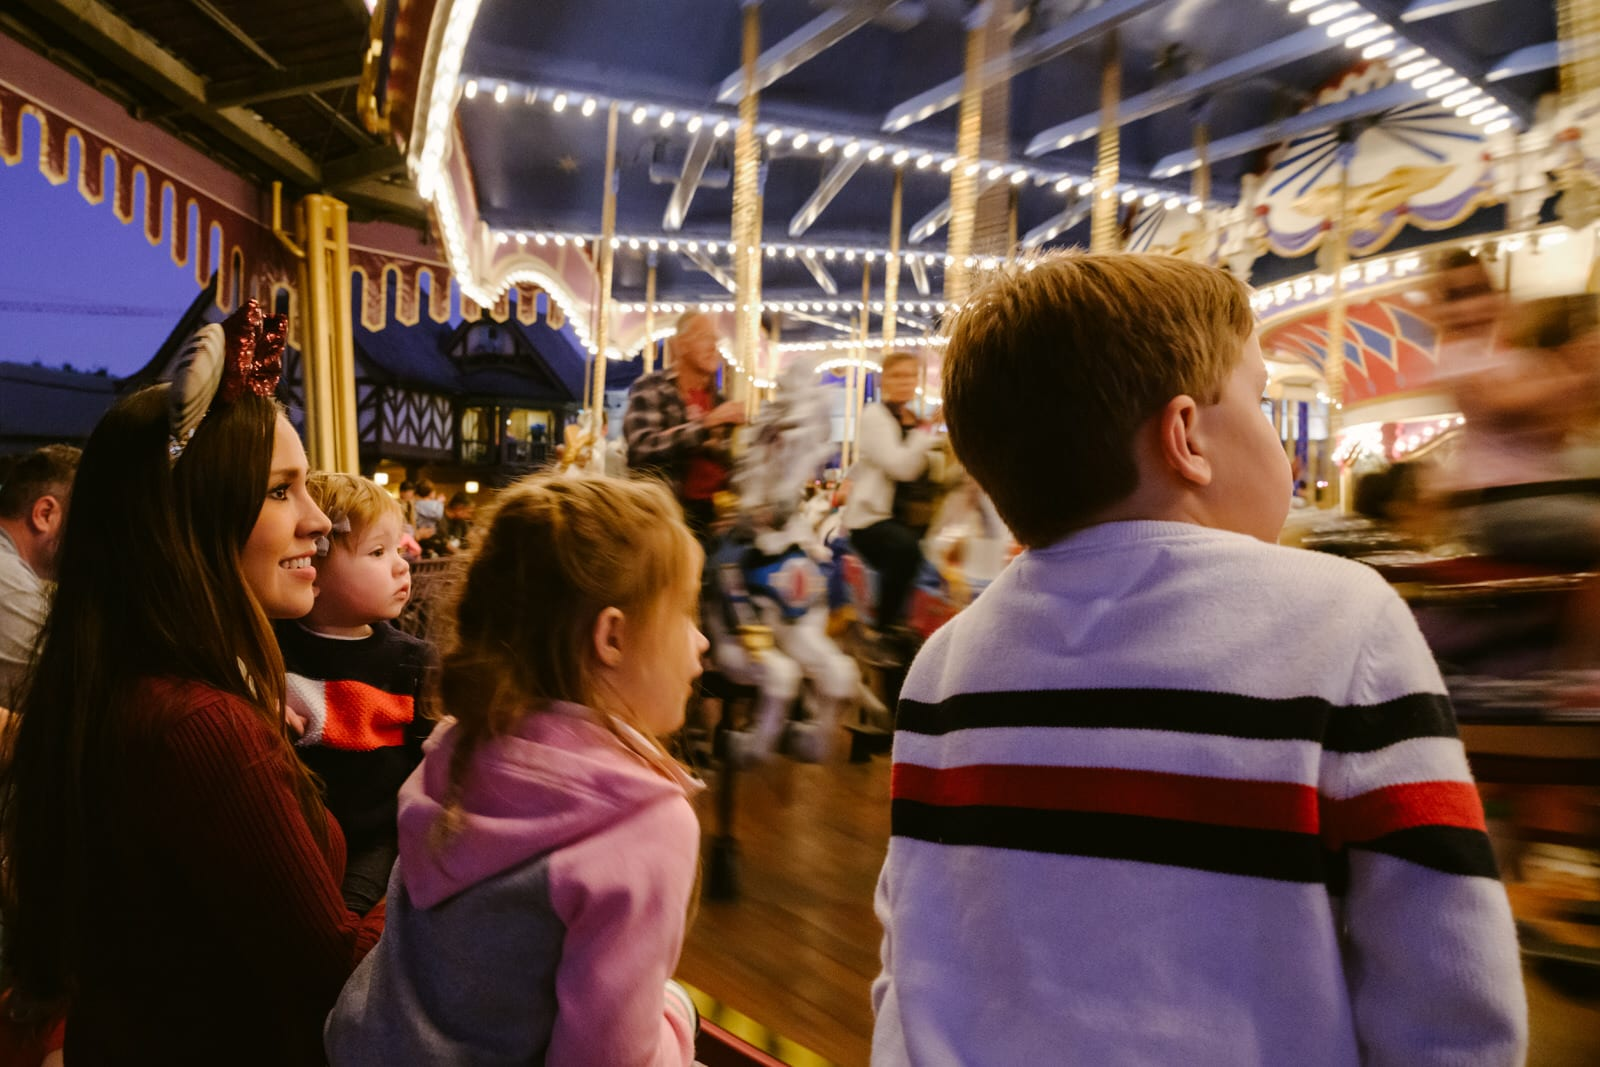 mom and kids wait to ride Prince Charming's Carousel